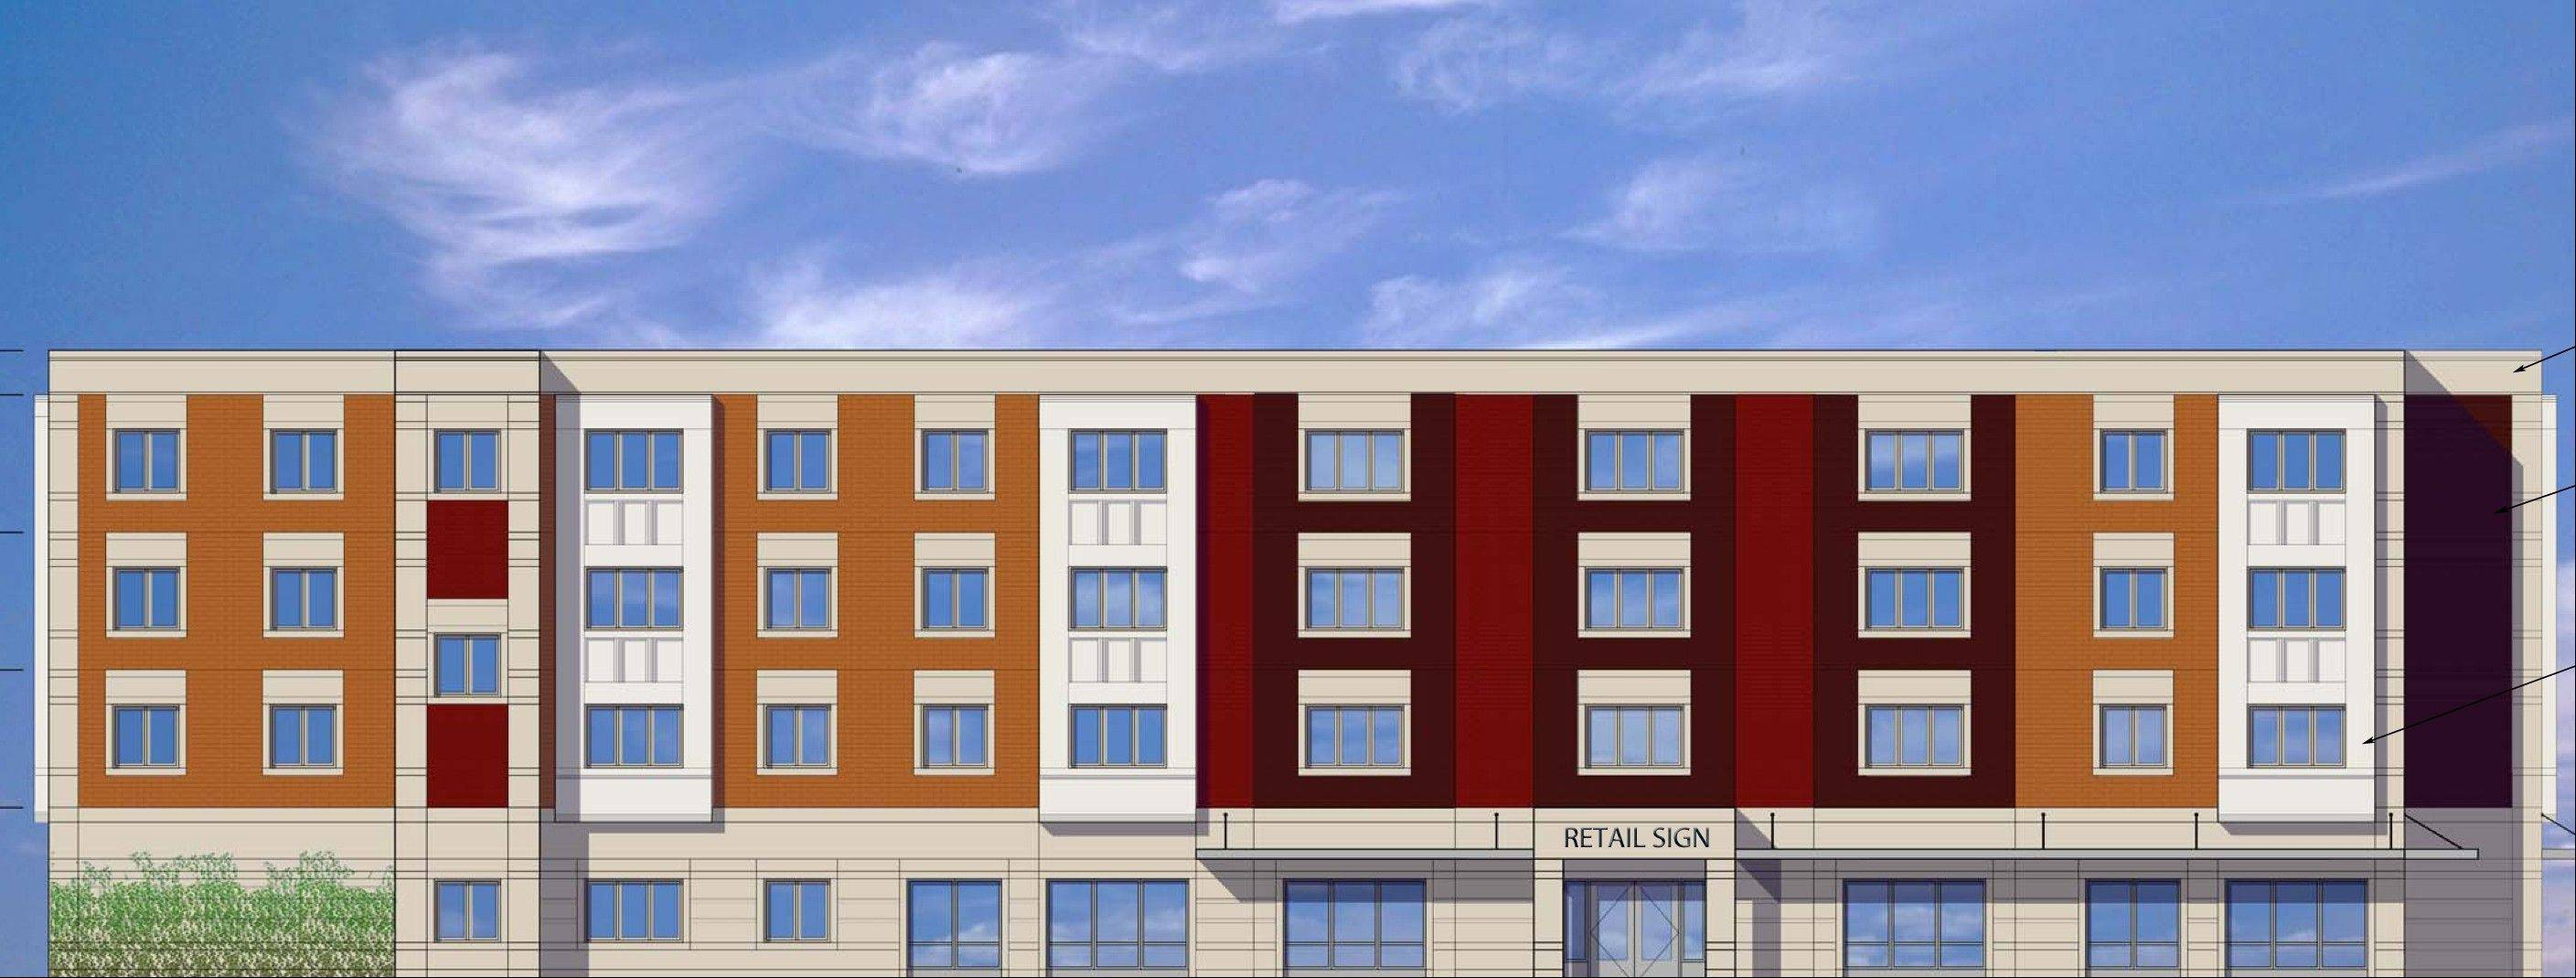 Myers Place, planned for a vacant site bear Busse Road and Dempster Street, will house 18 studio apartments and 21 one-bedroom apartments with a social service office and other commercial or retail tenants on first floor. Mount Prospect officials gave the project final approval this week.